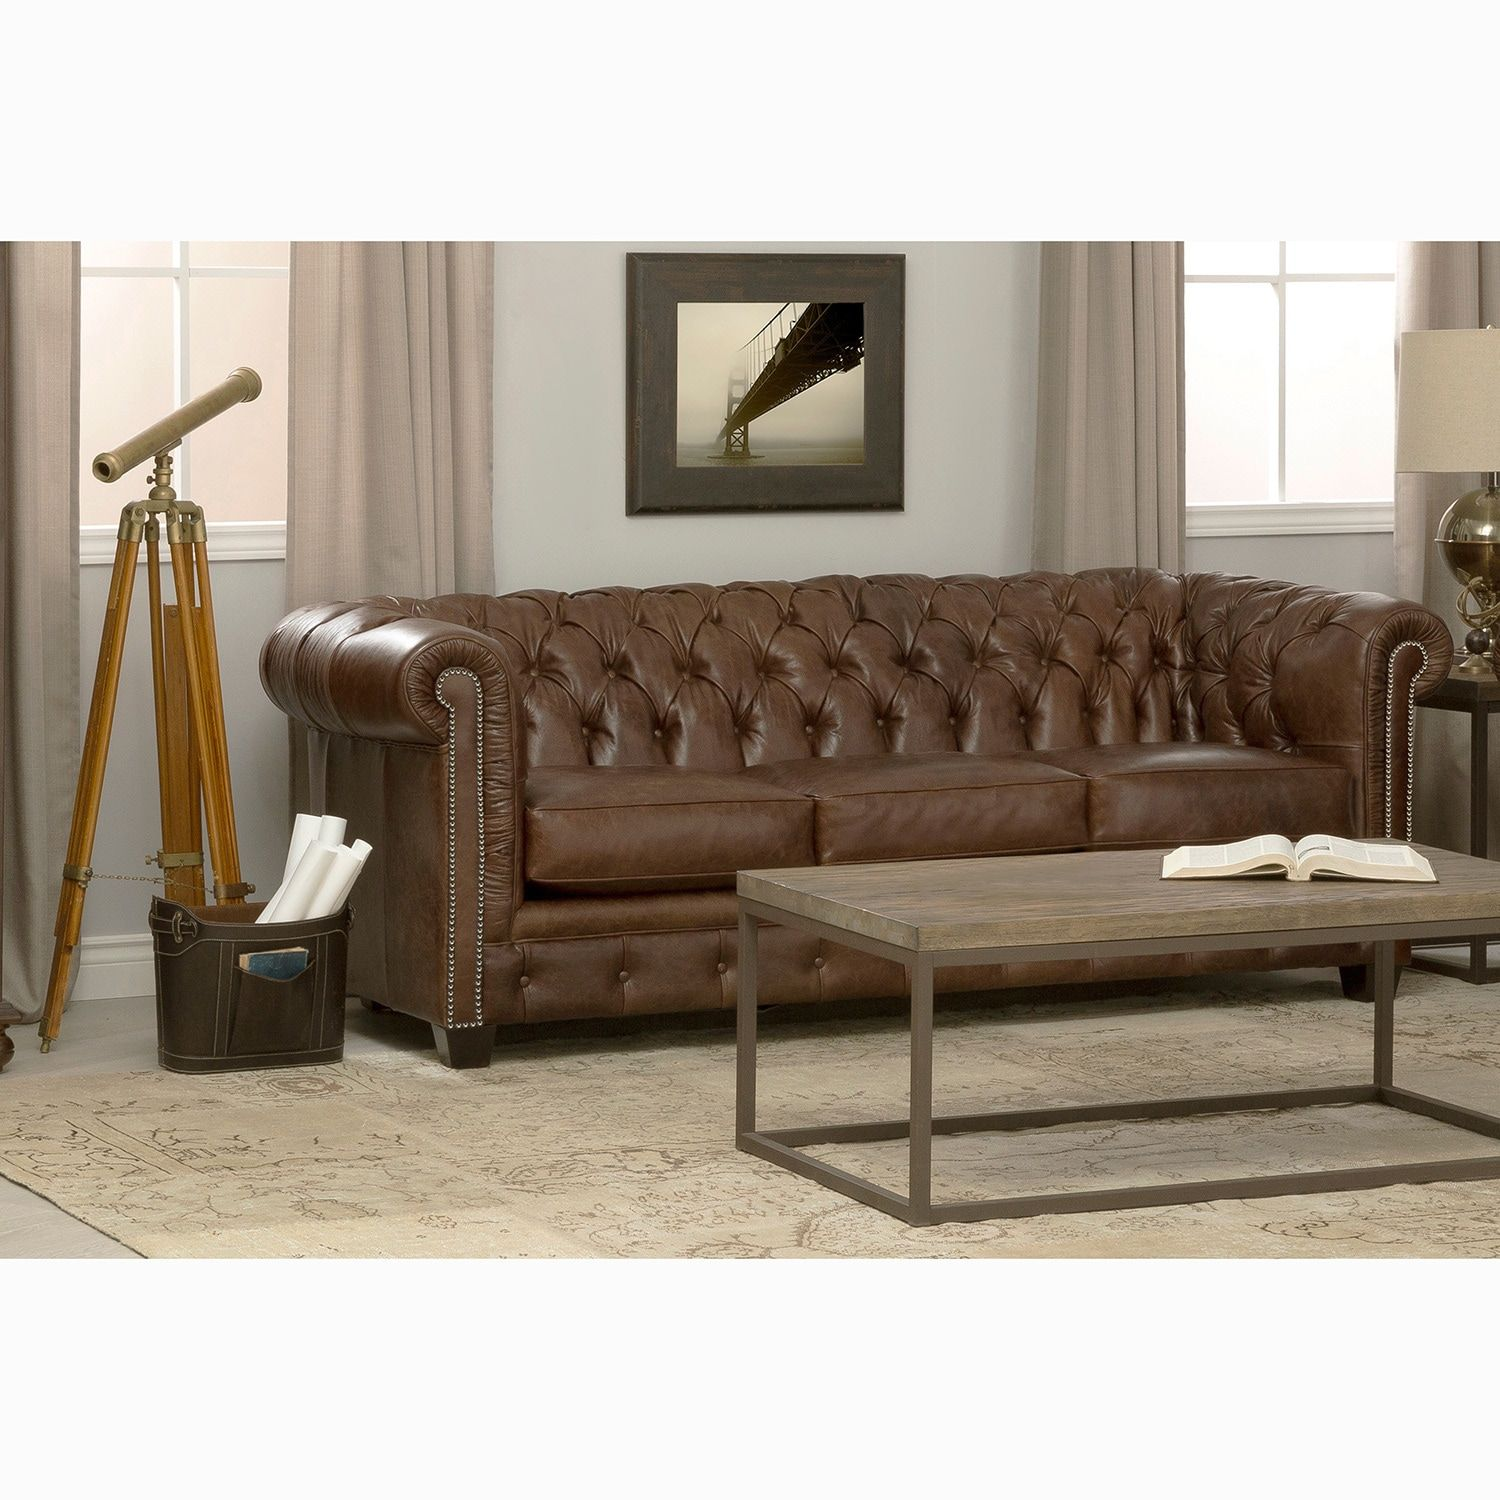 Overstock Com Online Shopping Bedding Furniture Electronics Jewelry Clothing More Brown Leather Chesterfield Sofa Tufted Leather Sofa Top Grain Leather Sofa